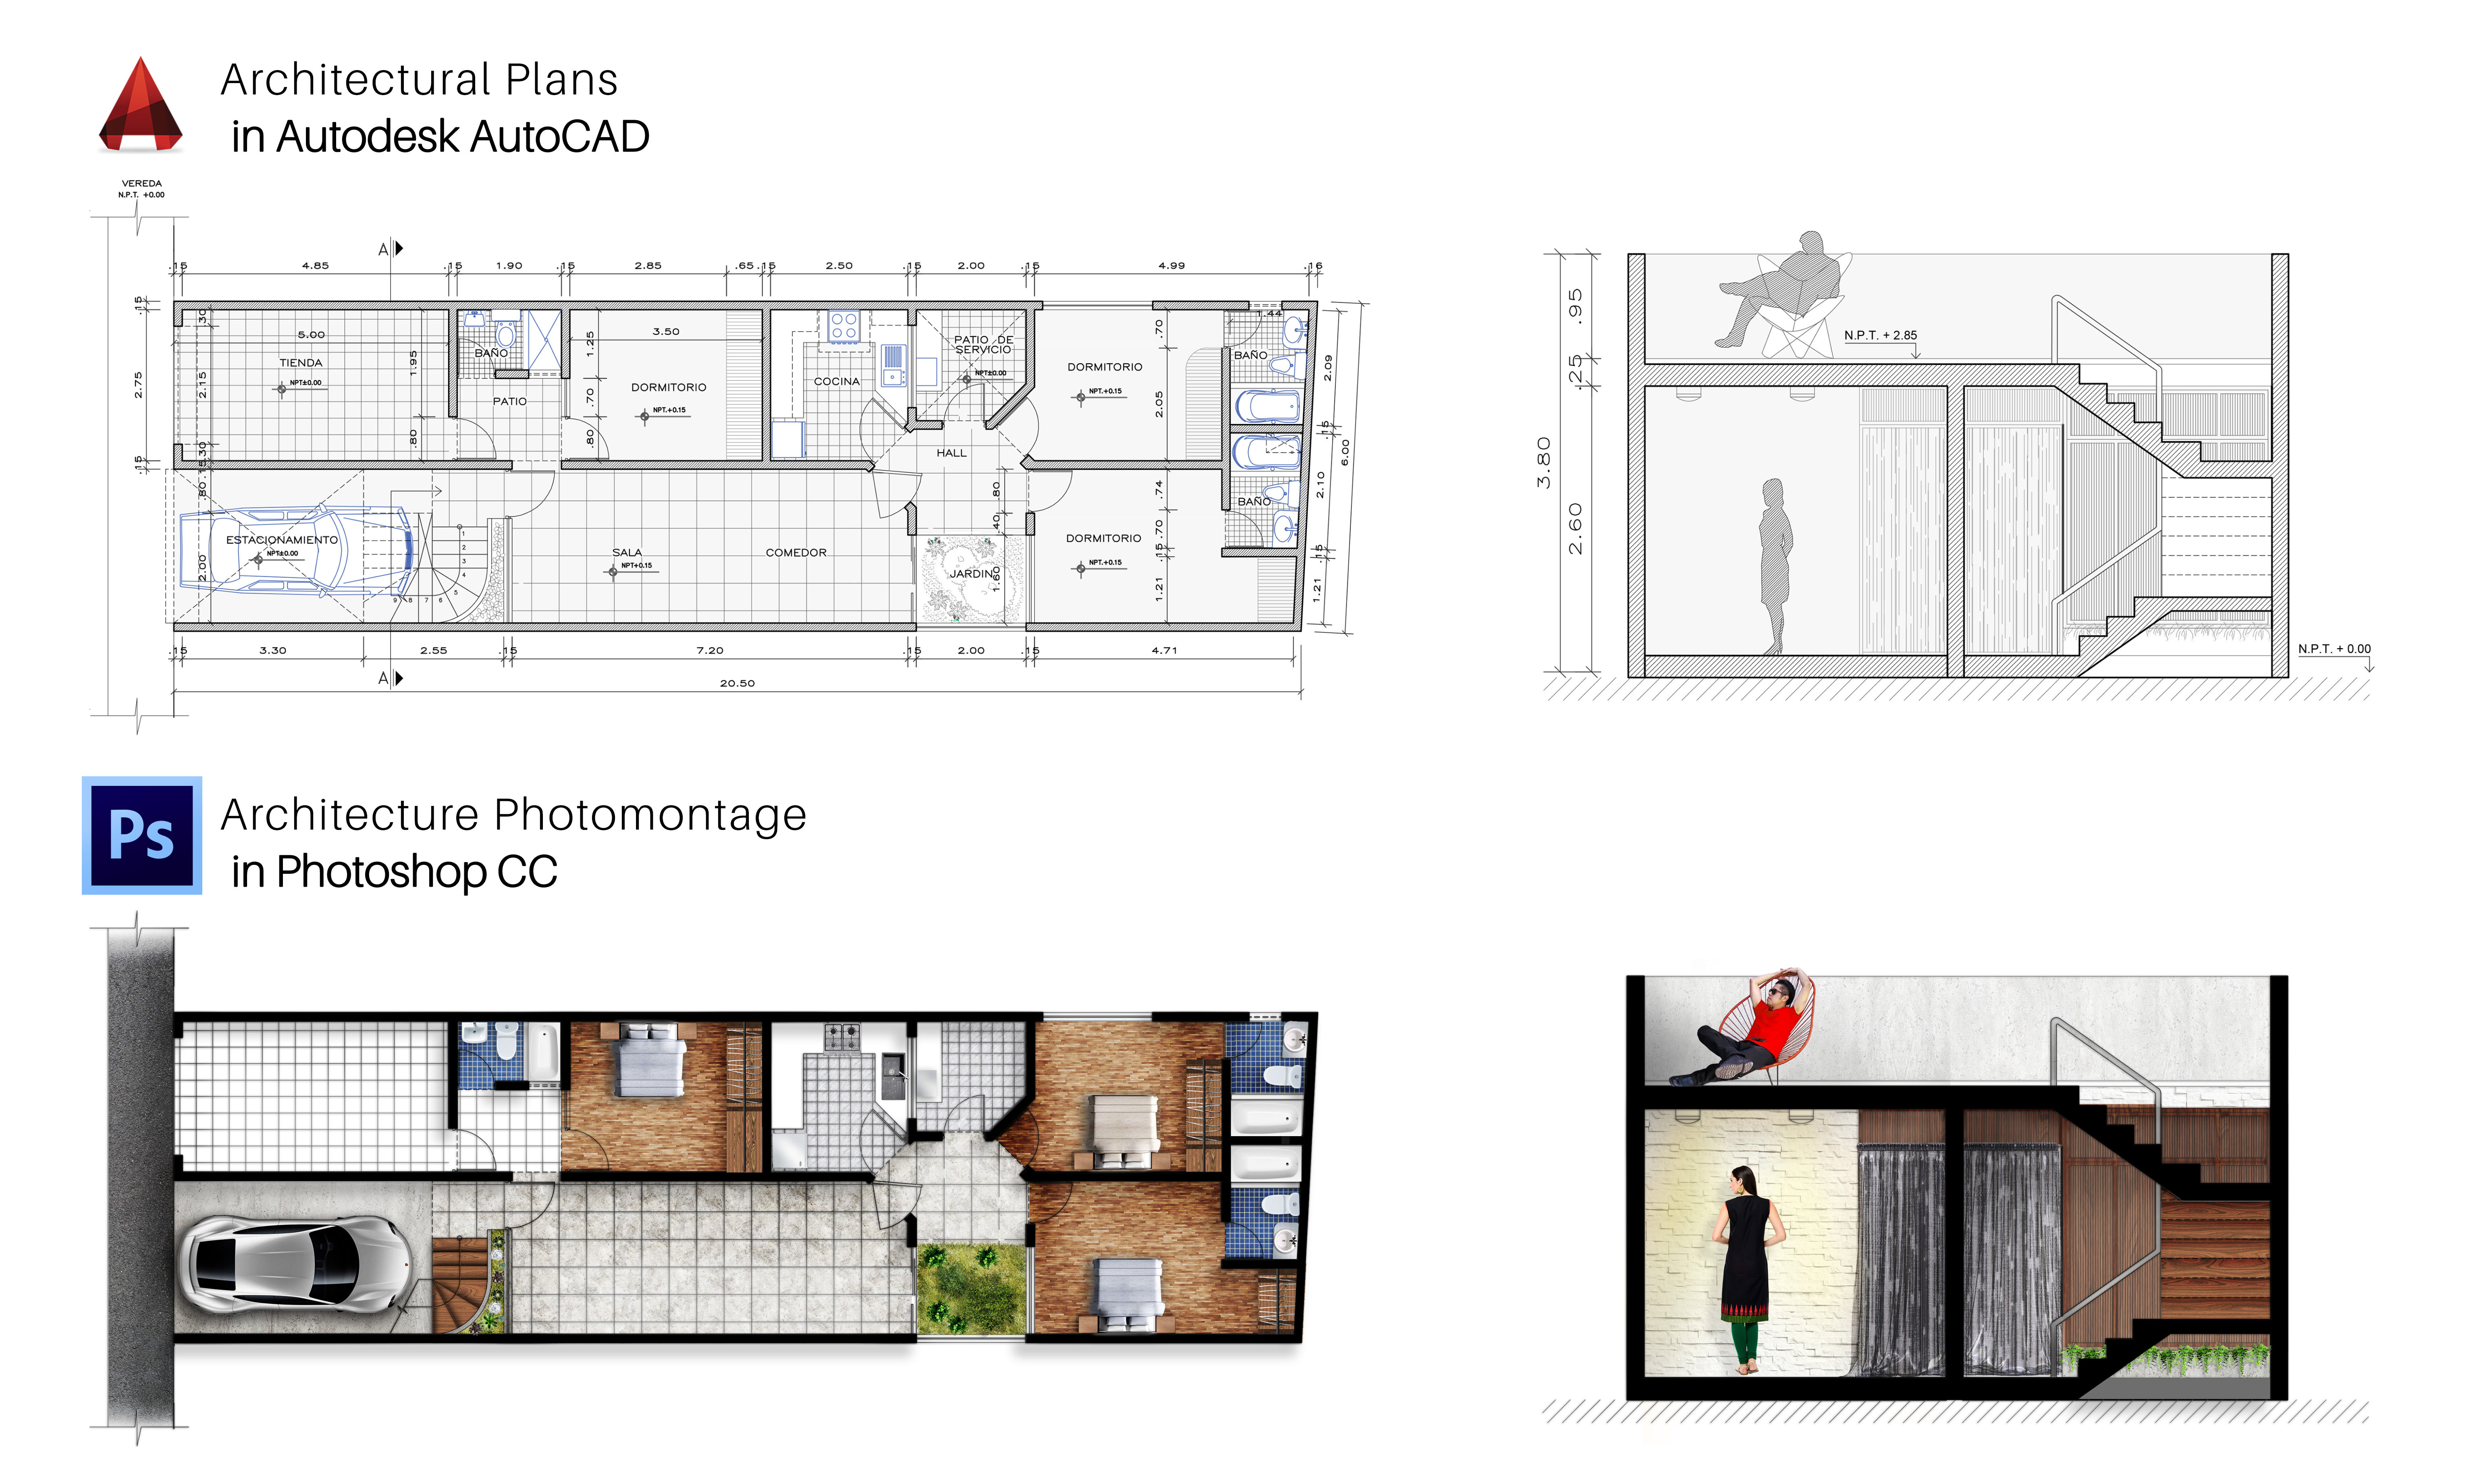 Draw floor plans, sections and